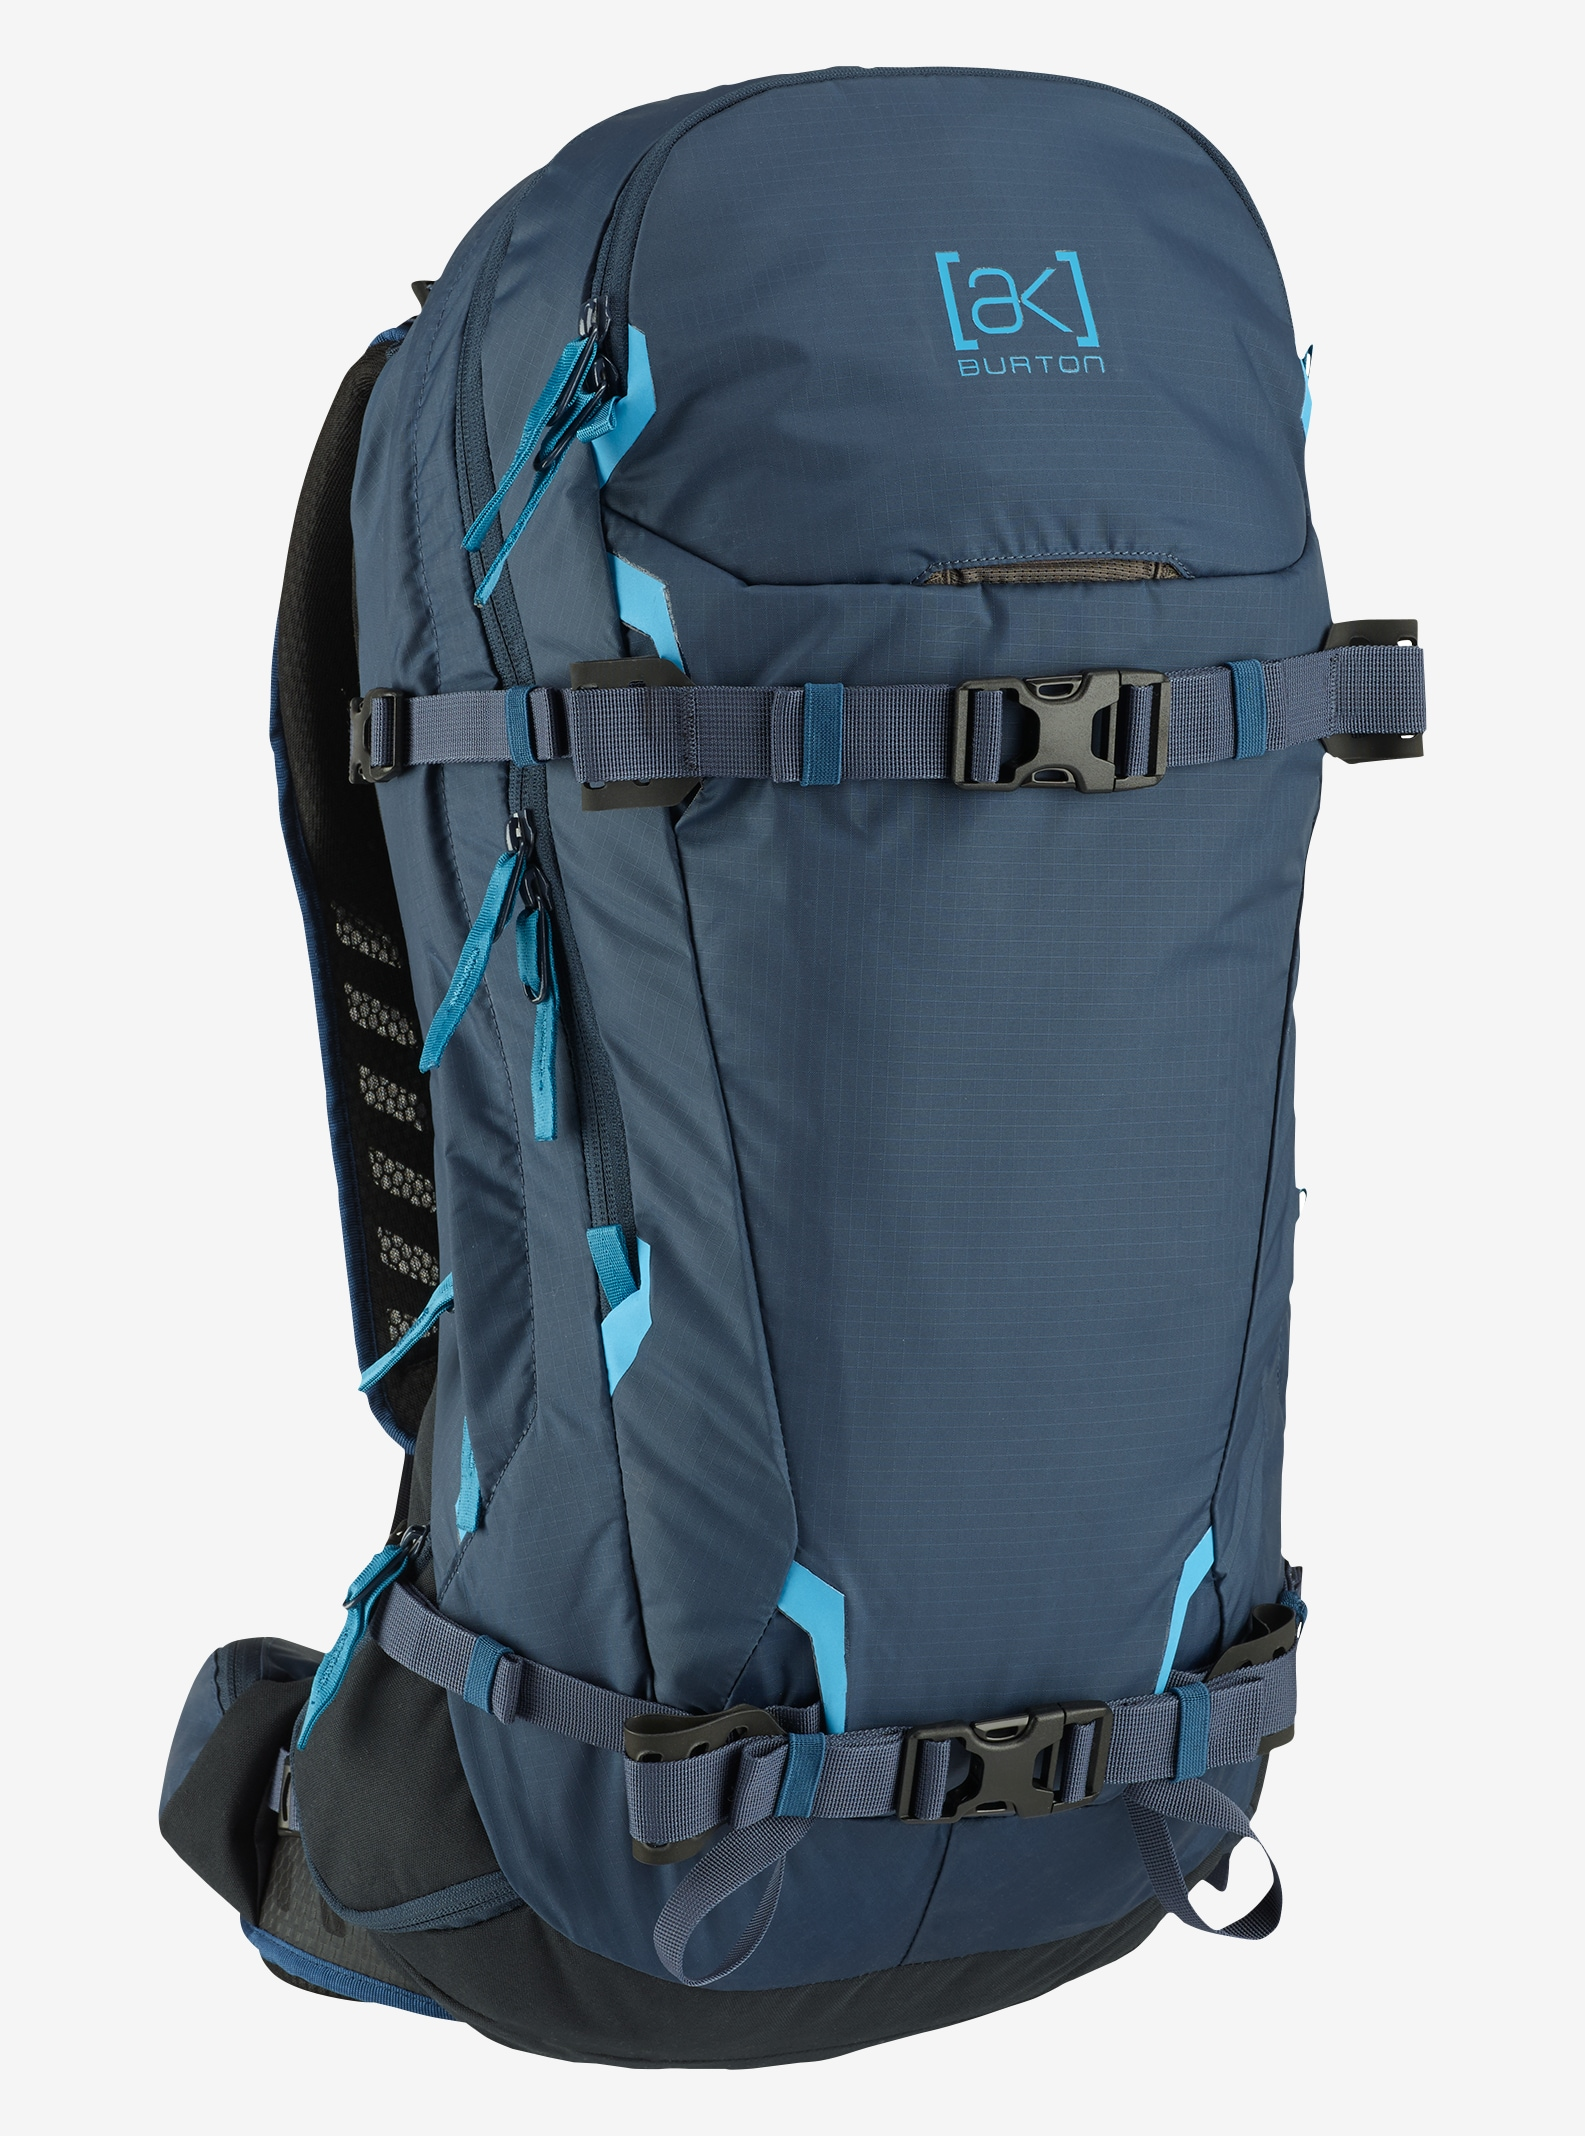 Burton [ak] Incline 20L Backpack shown in Mood Indigo Ripstop